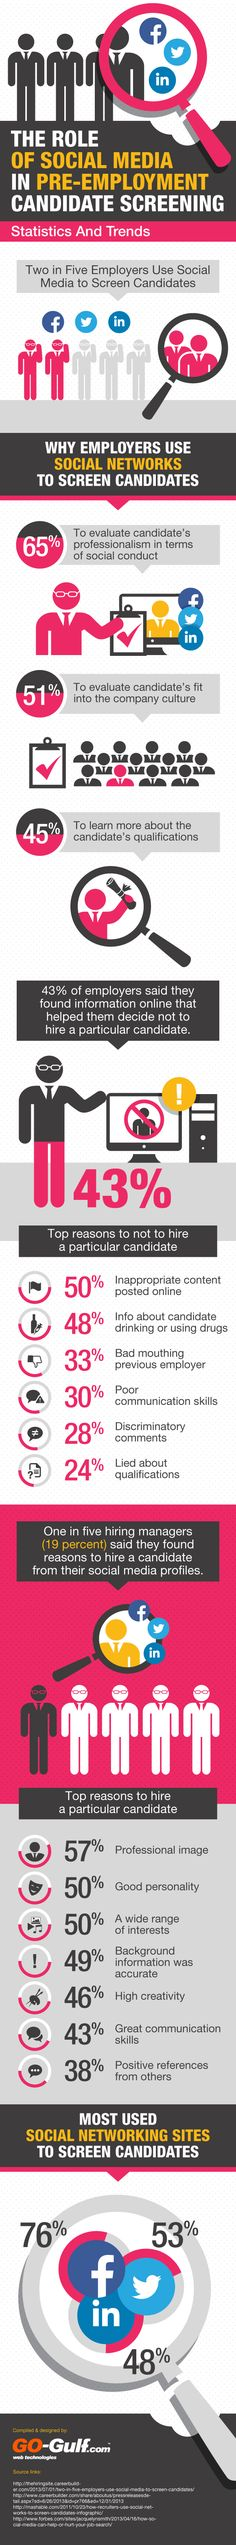 The importance of facebook in employment social media screening